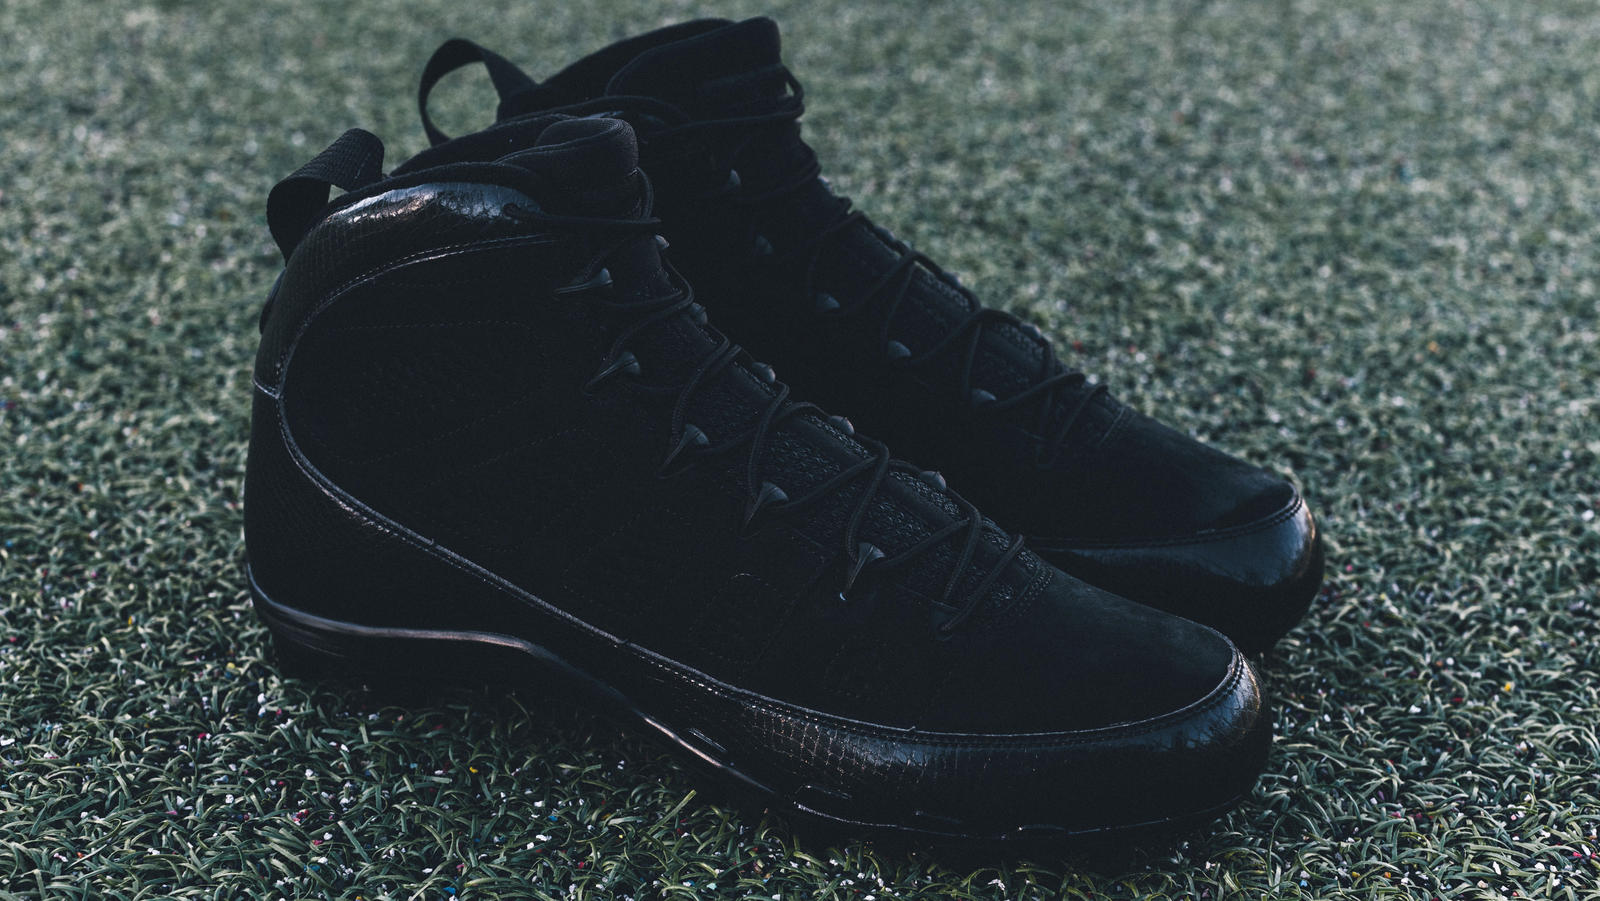 Jordan Reed Air Jordan IX PE Cleat.